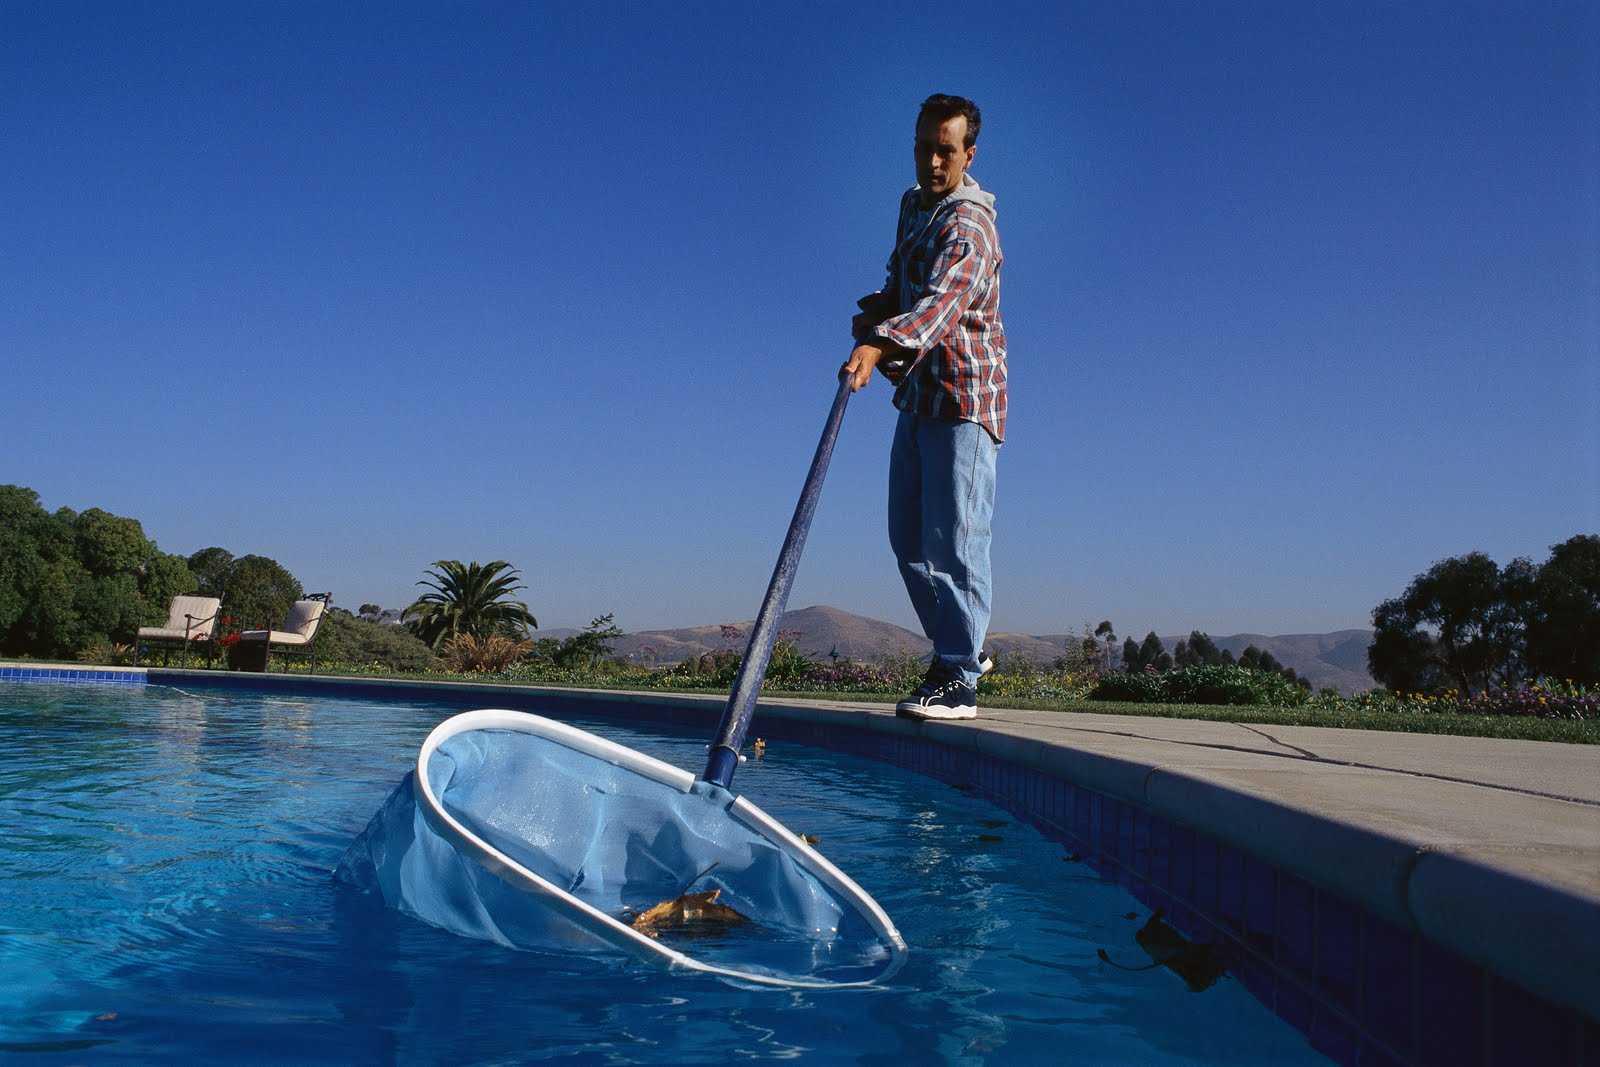 Pool Cleaning Tips swimming pool maintenance archives - the pool butler - pool repair